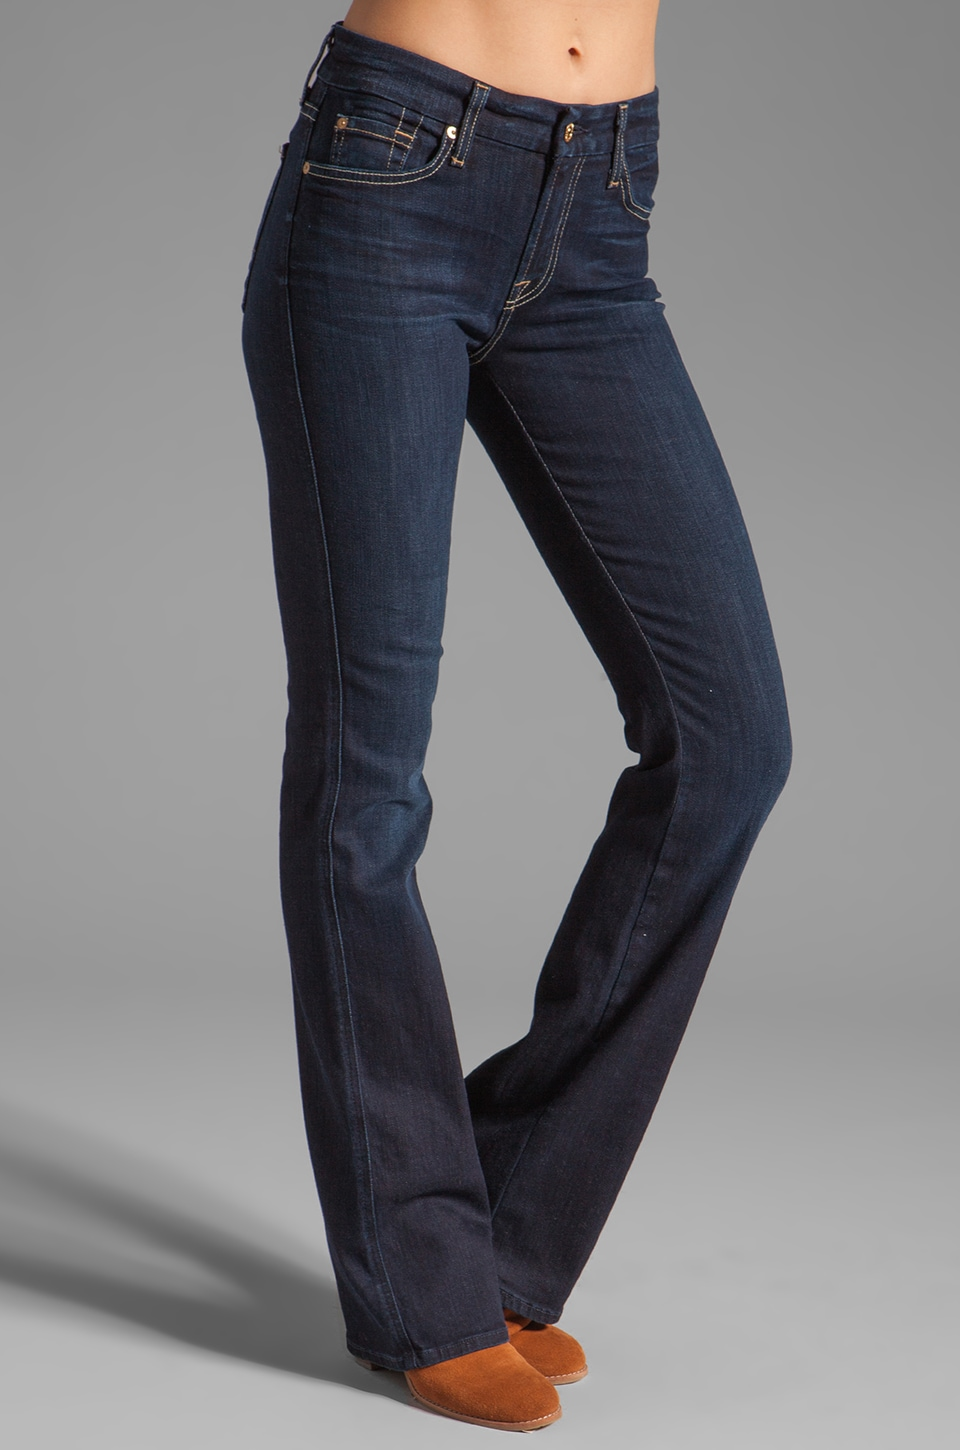 7 For All Mankind Mid Rise Kimmie Bootcut in Black Night